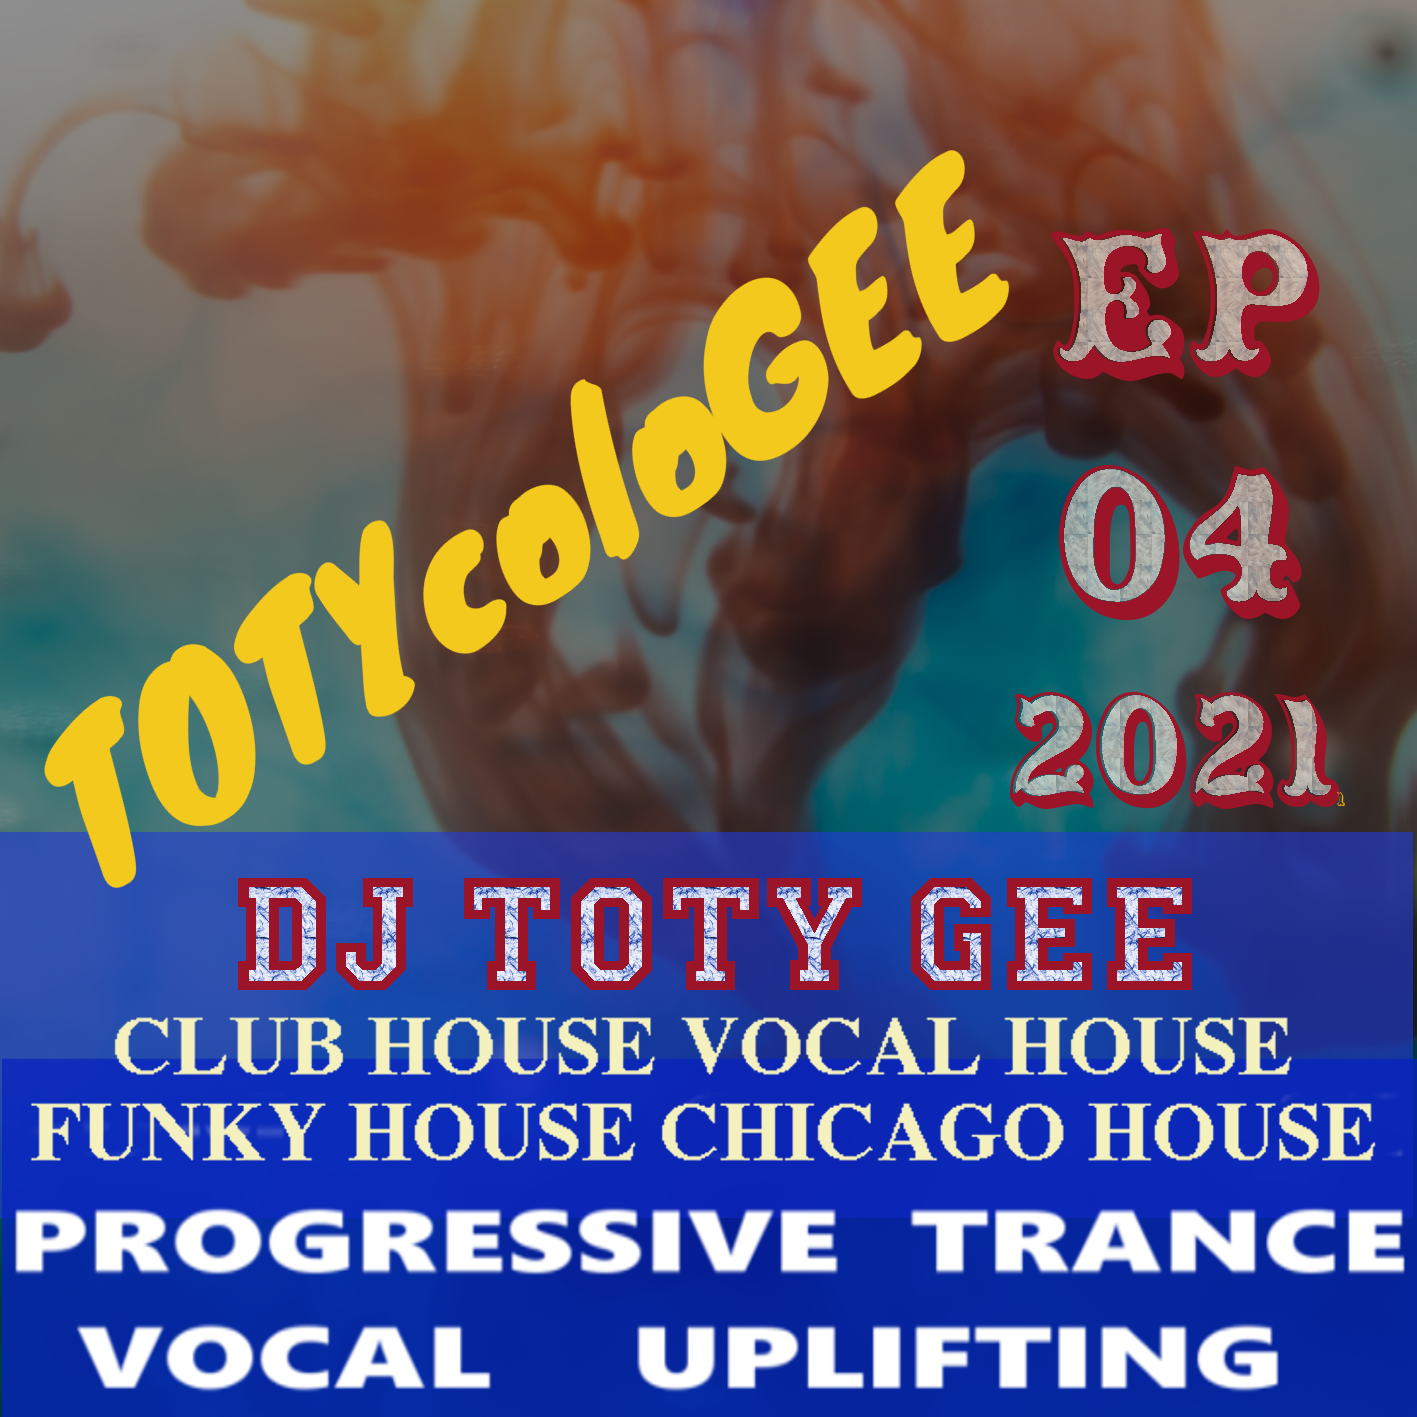 TOTYcoloGEE 2021 – 04 – DJ TOTY GEE Live!